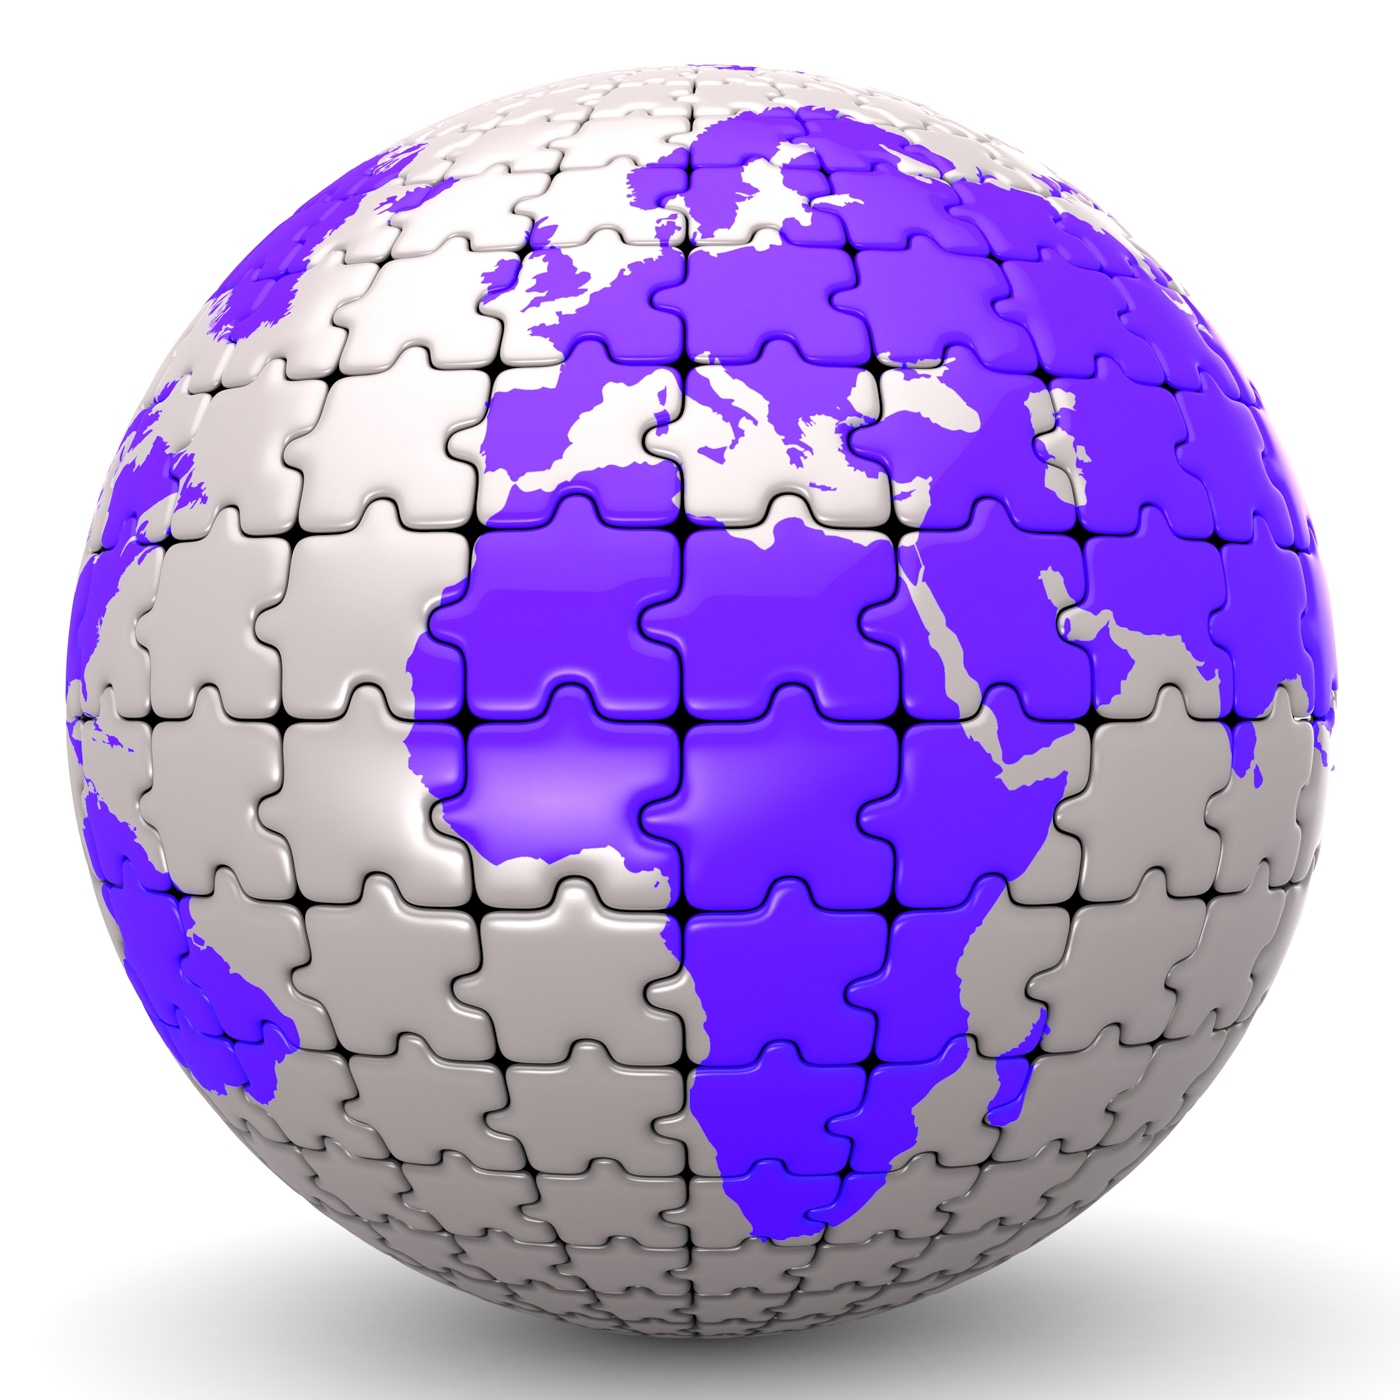 Globe World Means Jigsaw Puzzle And Global, Assemble, Worldly, World, Puzzle, HQ Photo